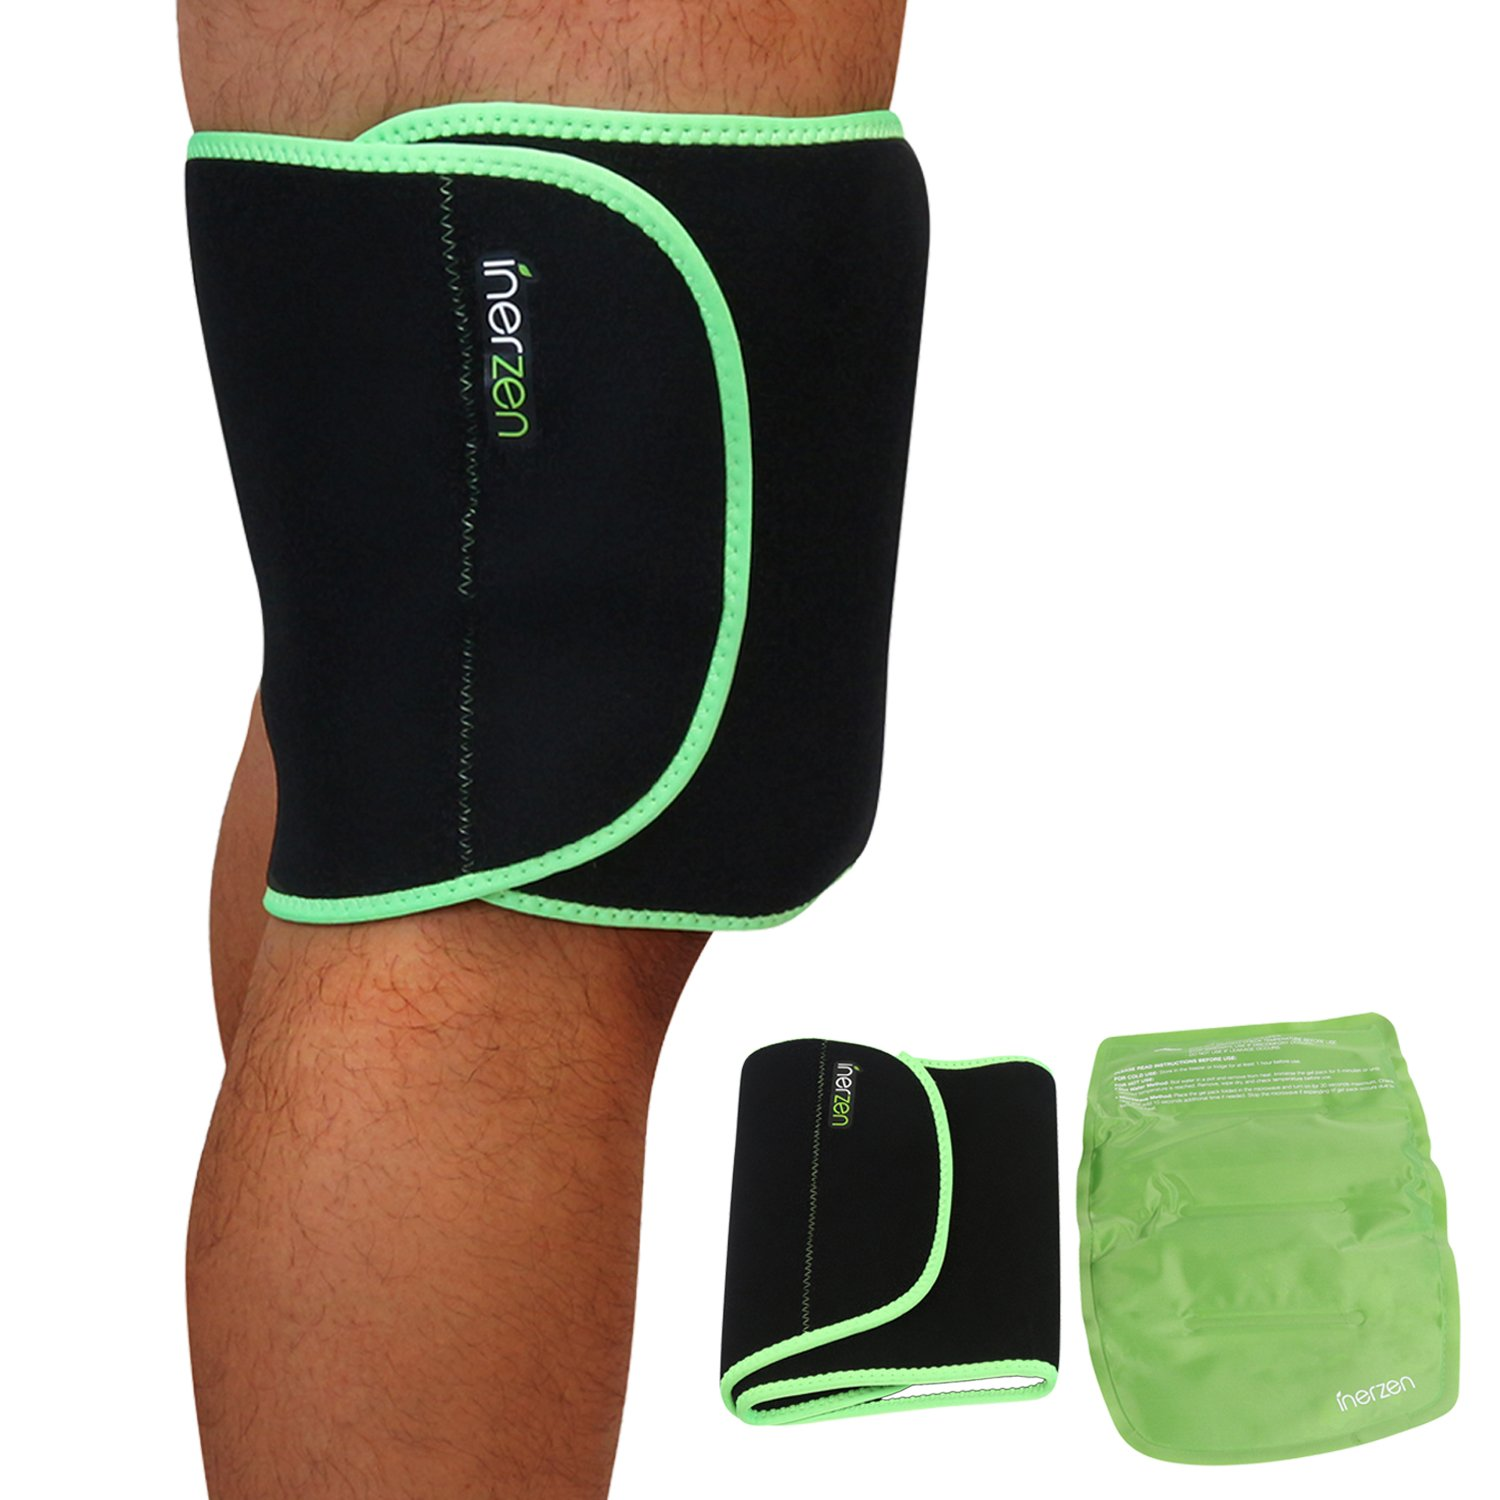 Inerzen Thigh, Quad, Hamstring Support Hot and Cold Gel Therapy Wrap - Includes Hot or Cold Gel Pack for Pain Relief - Microwavable, Freezable, Reusable (One Size Fits All)